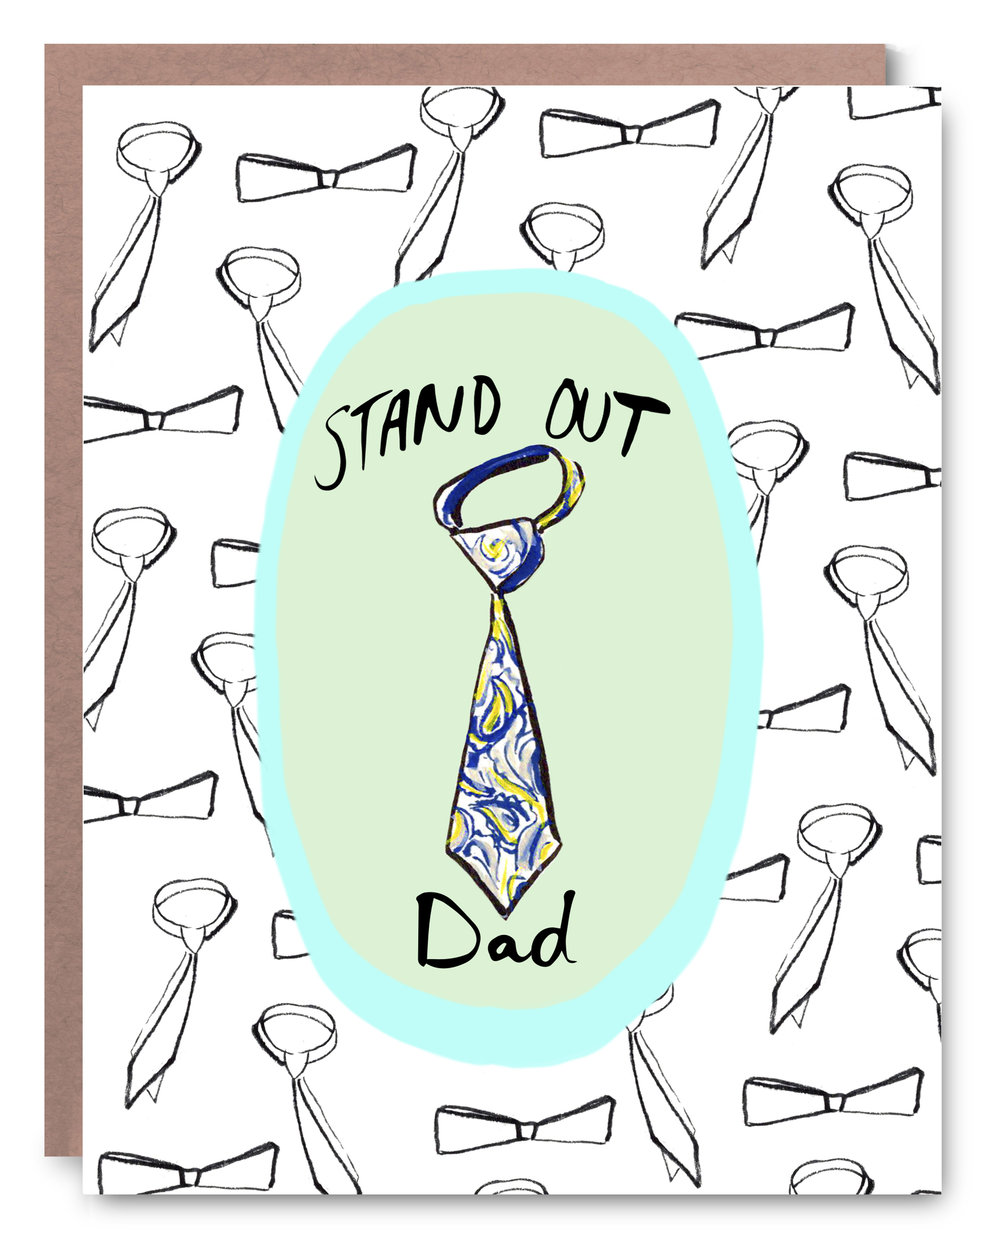 Stand out Dad - $5.00